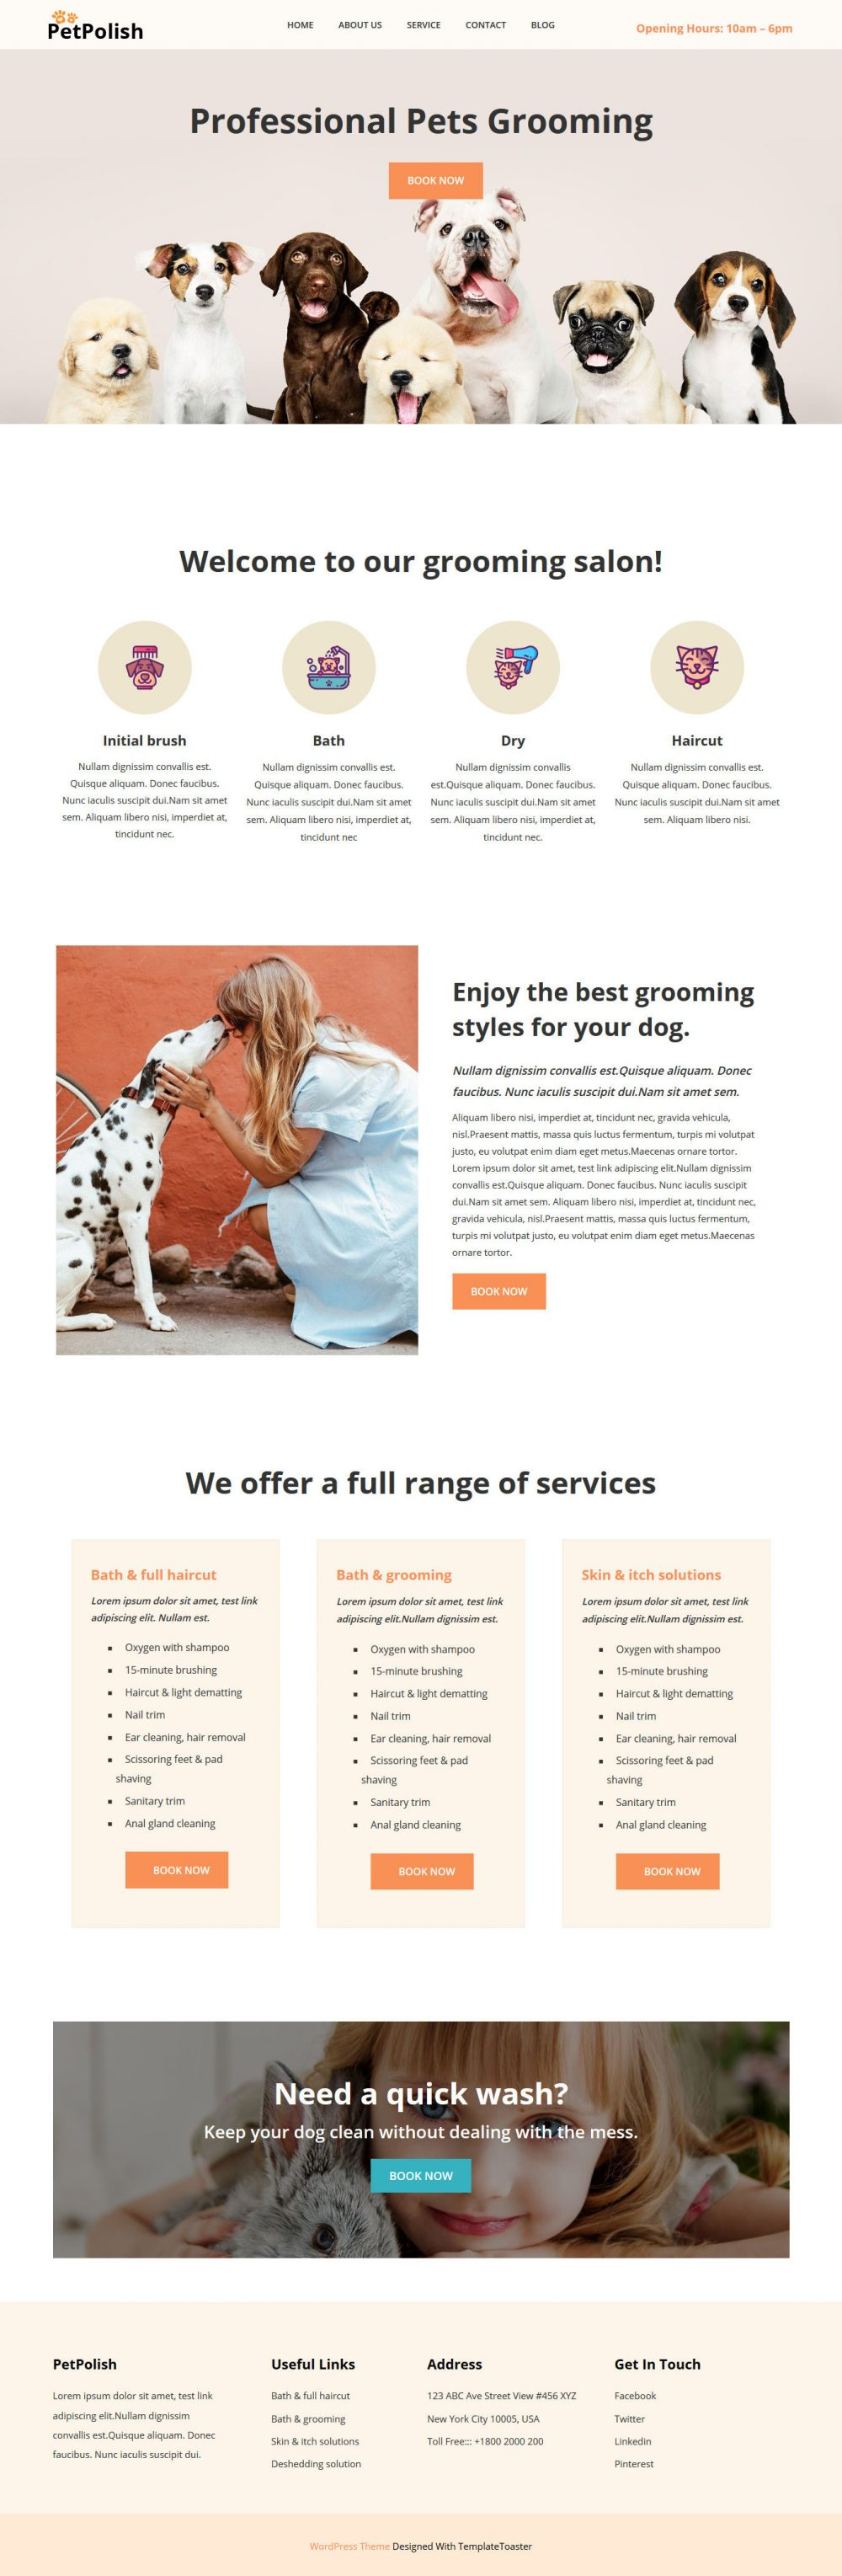 petpolish pet cleaning and care services wordpress theme